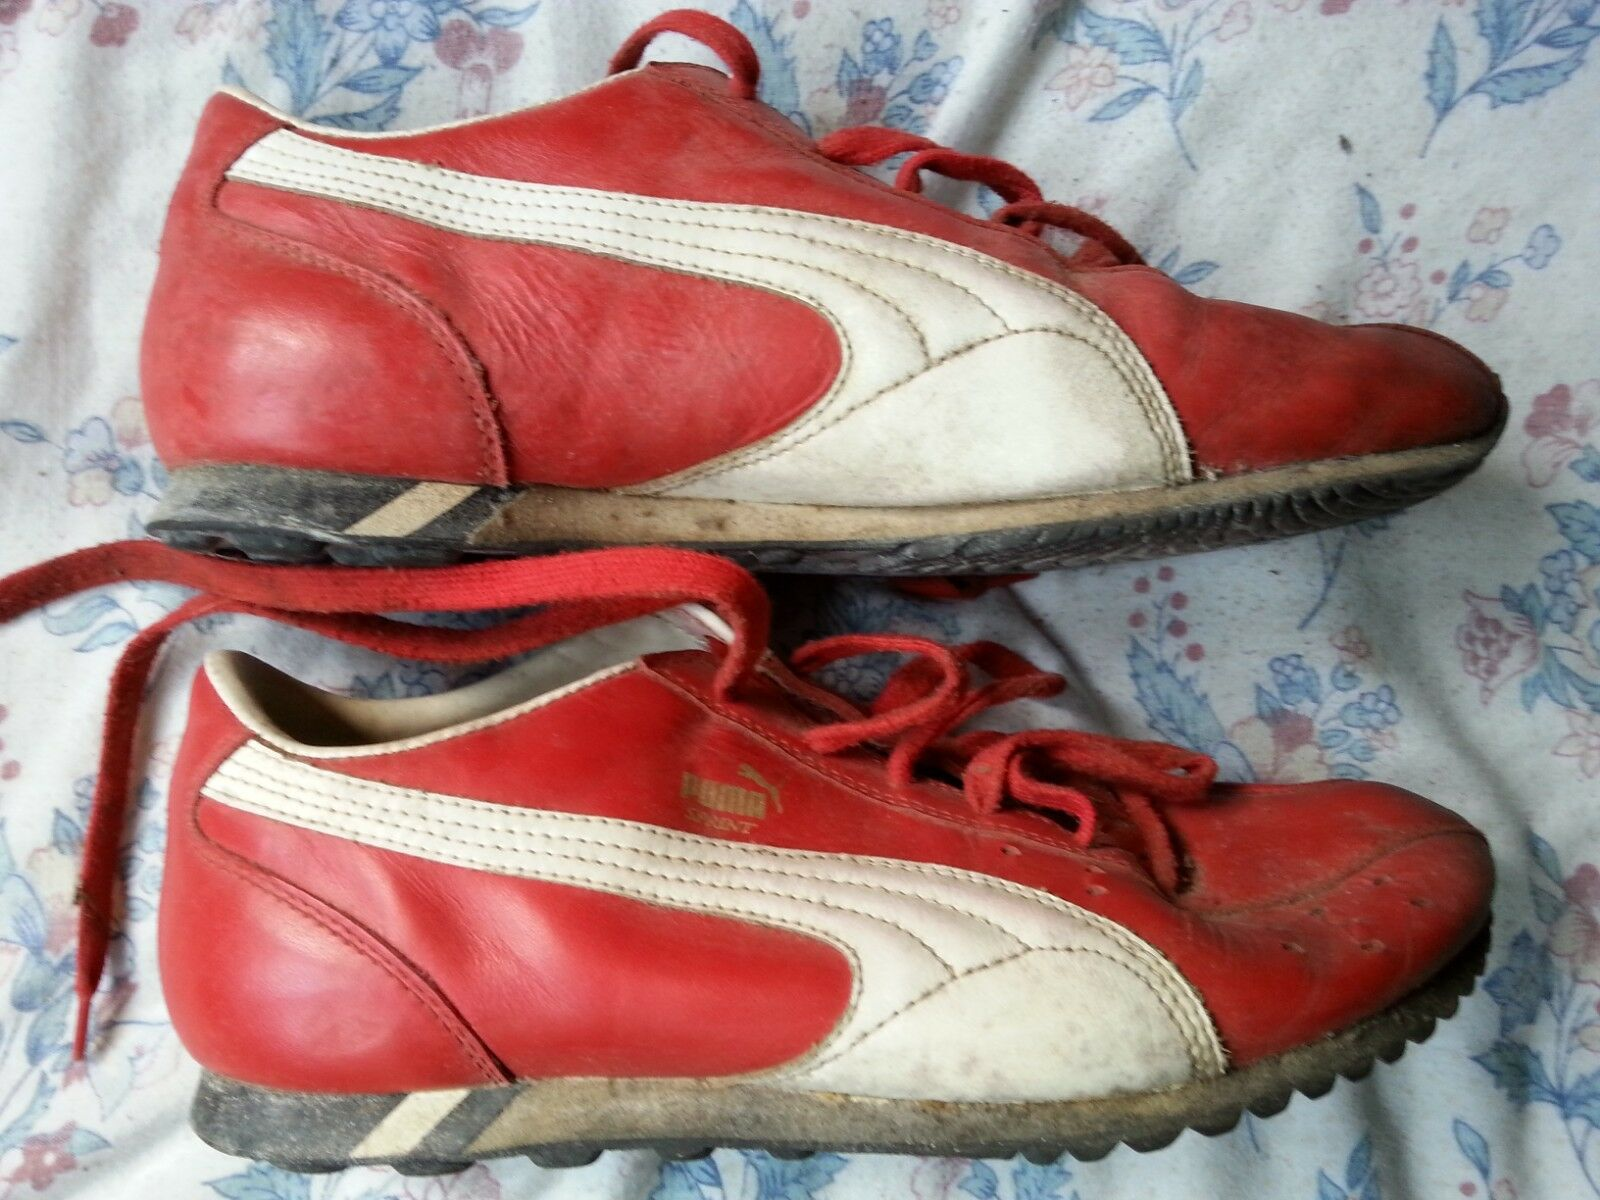 8564b6b6aca9 Puma Sprint Trainers Red White size 7 1 2 Good Condition